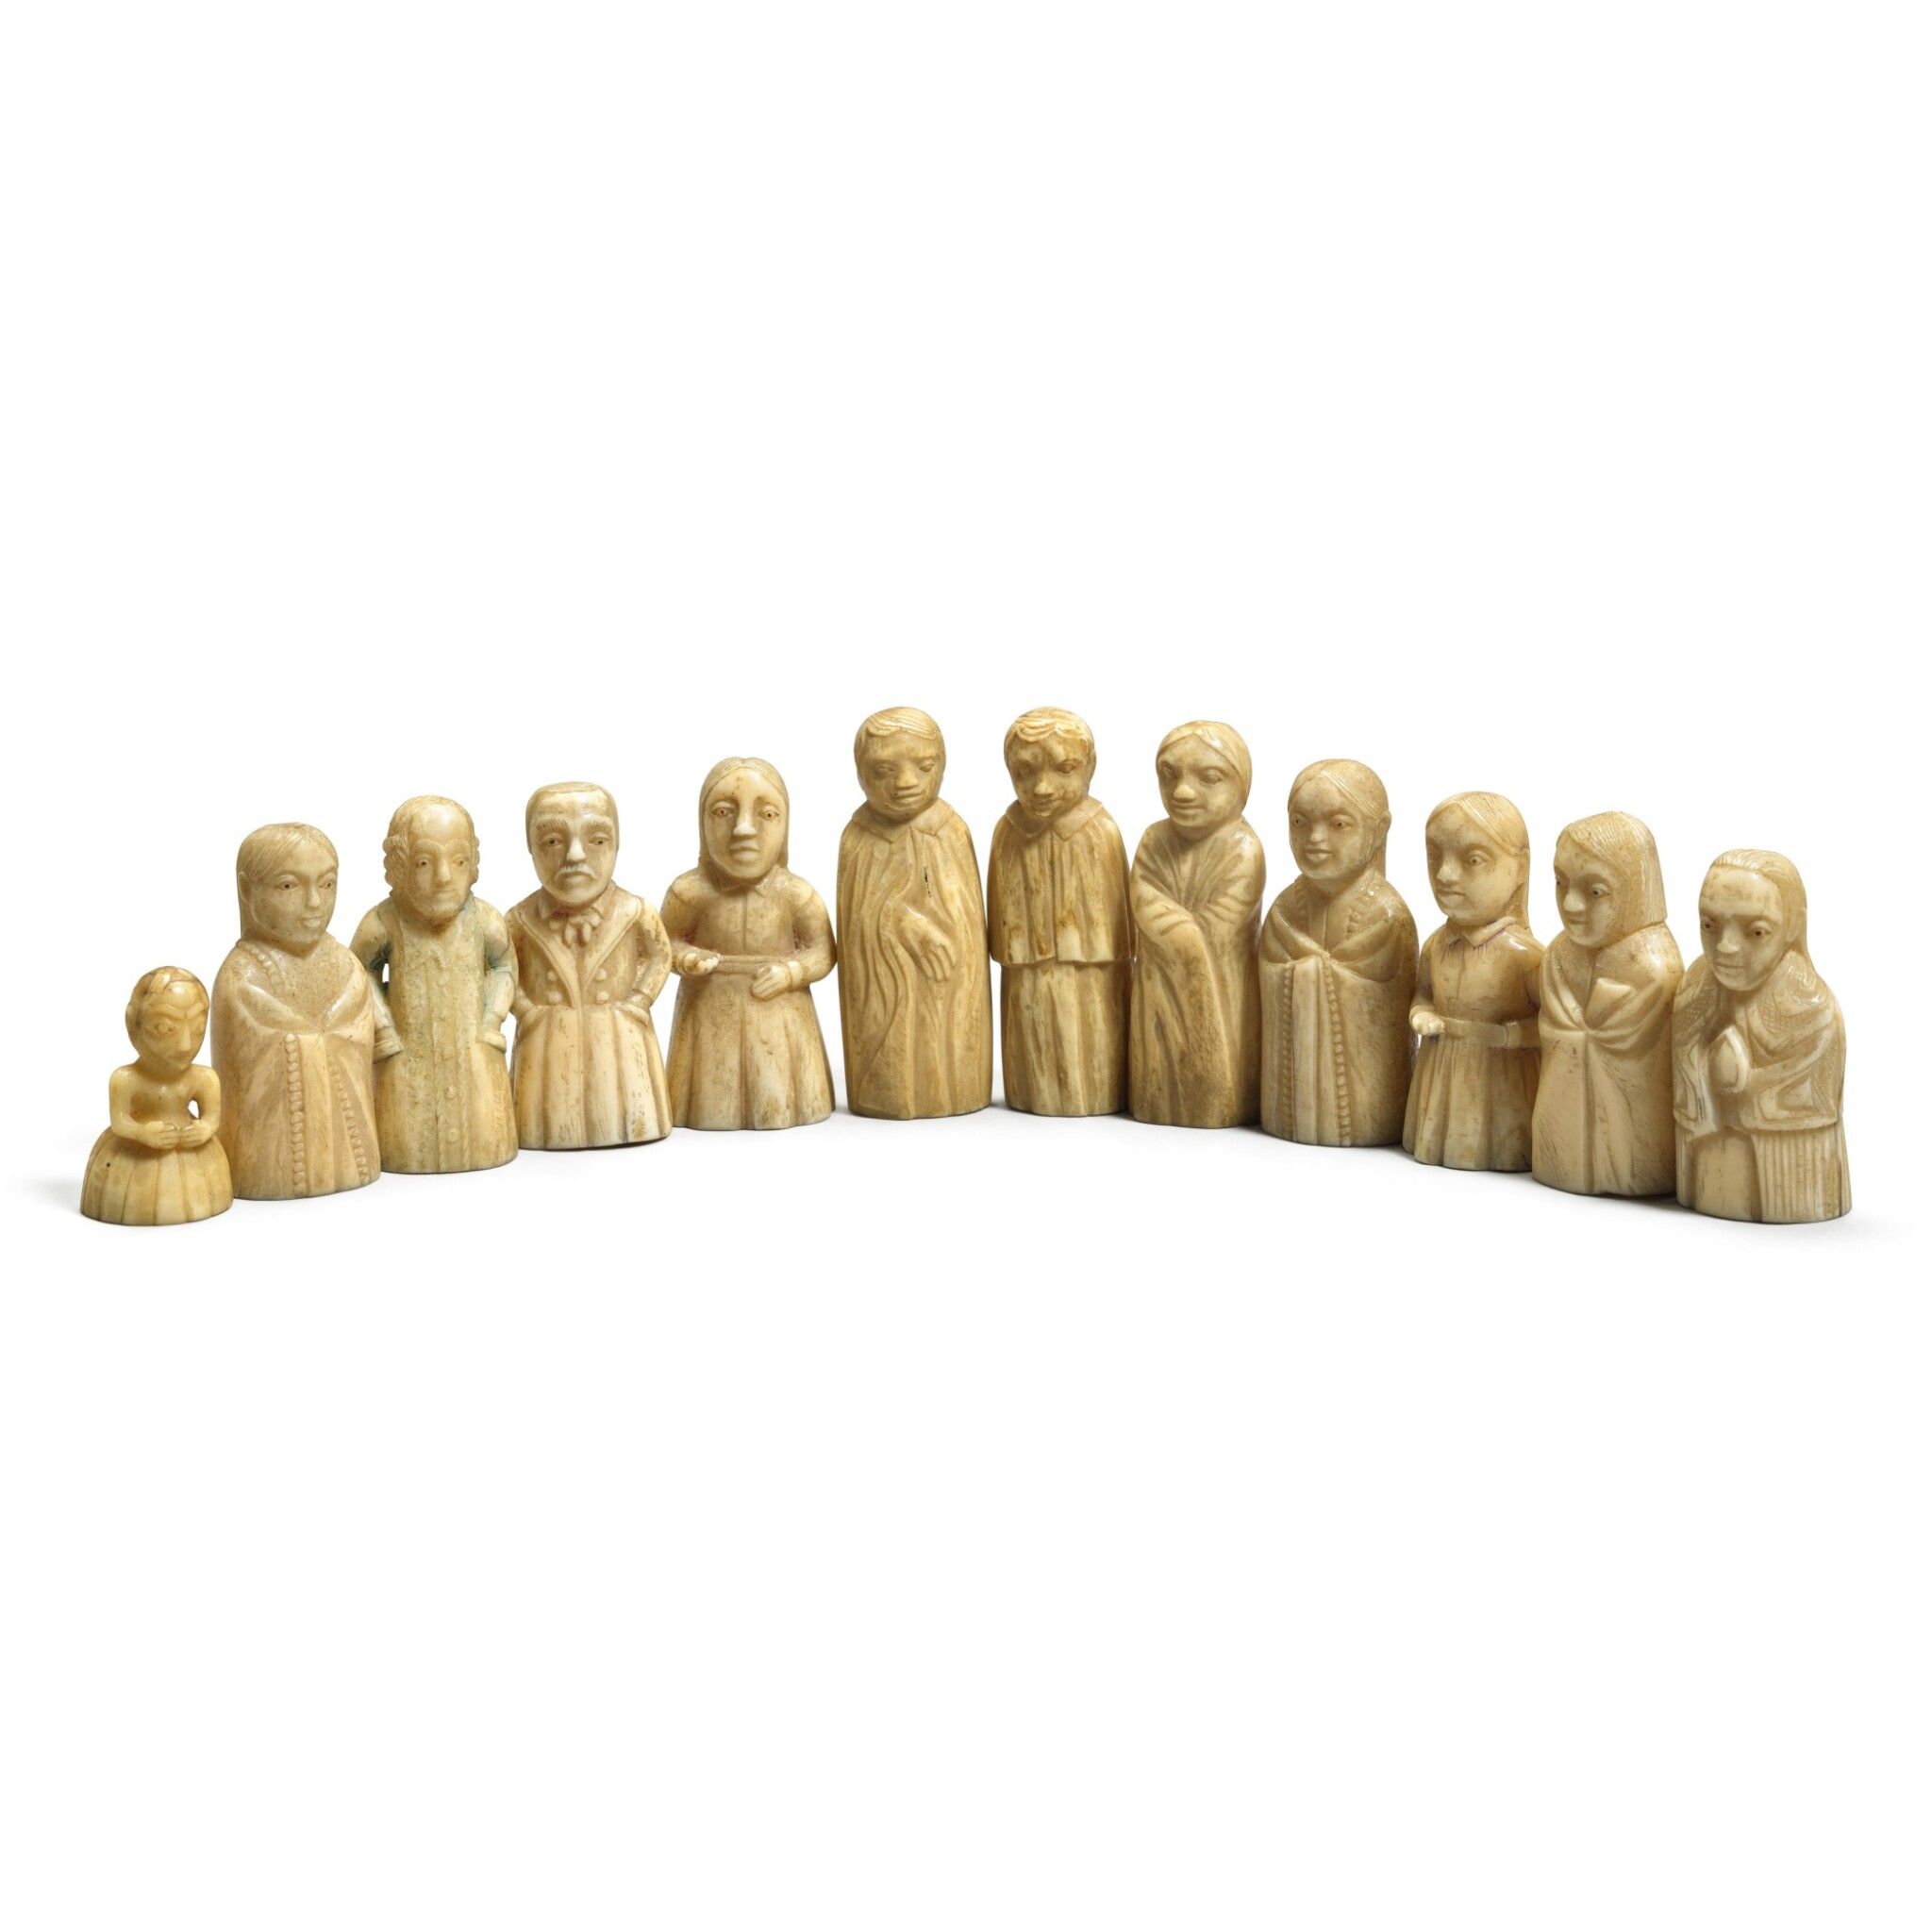 View full screen - View 1 of Lot 113. A group of twelve carved marine ivory figures depicting Haida and European people, Pacific Northwest Coast, circa 1840.